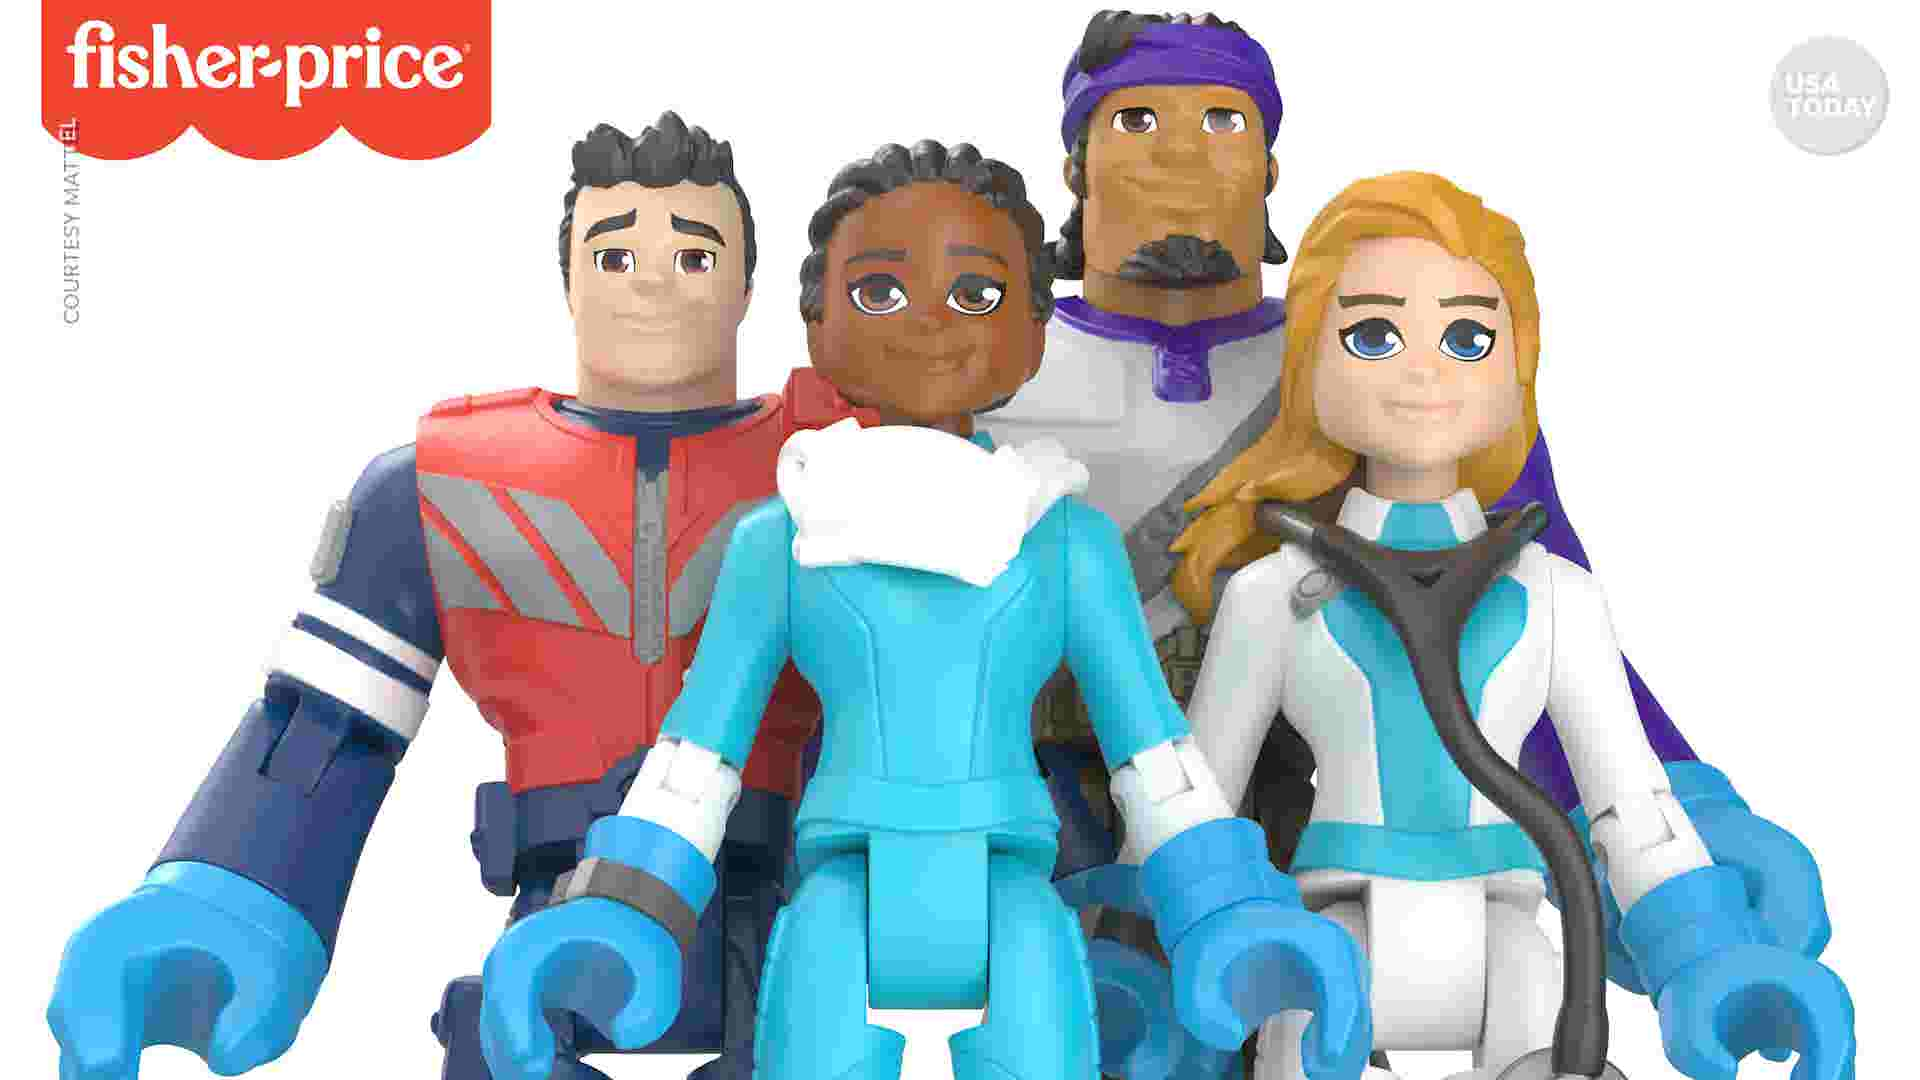 New action figures, toys to honor frontline heroes of coronavirus pandemic